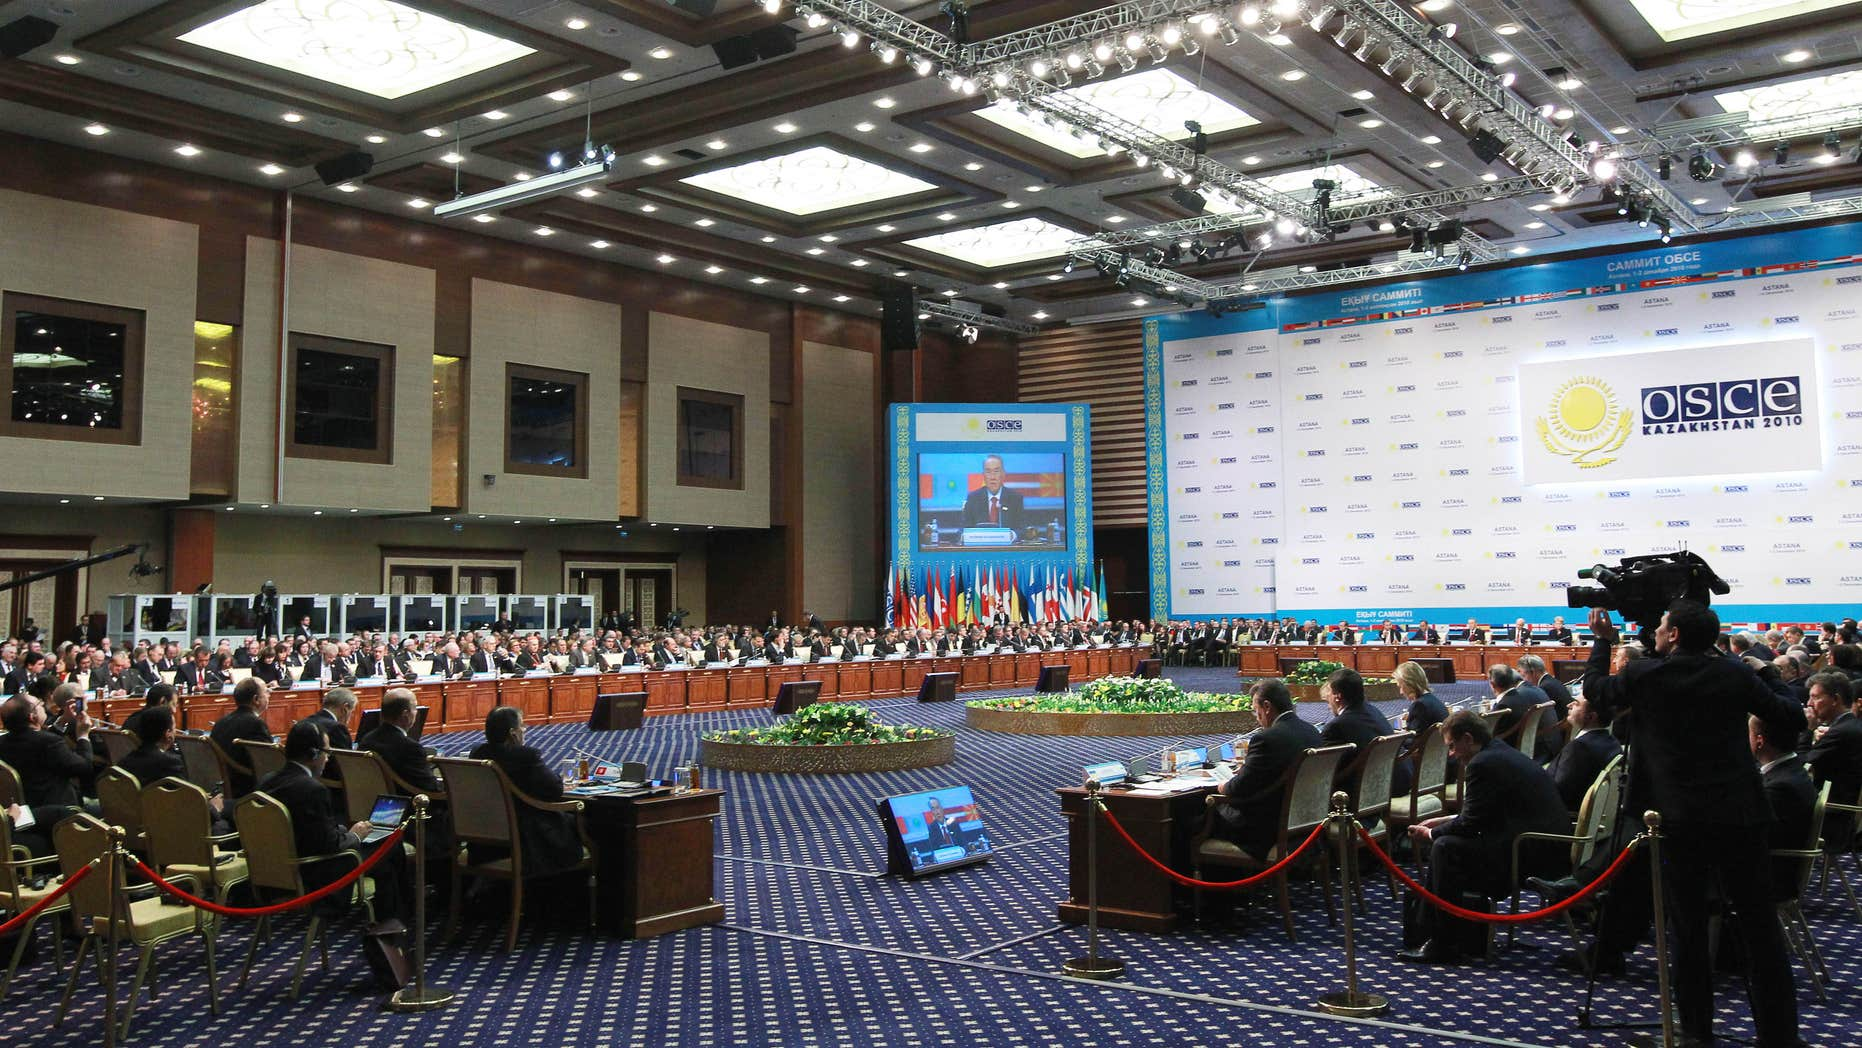 Dec. 1: General view of the OSCE (Organization for Security and Cooperation in Europe) meeting on in Astana, Kazakhstan.